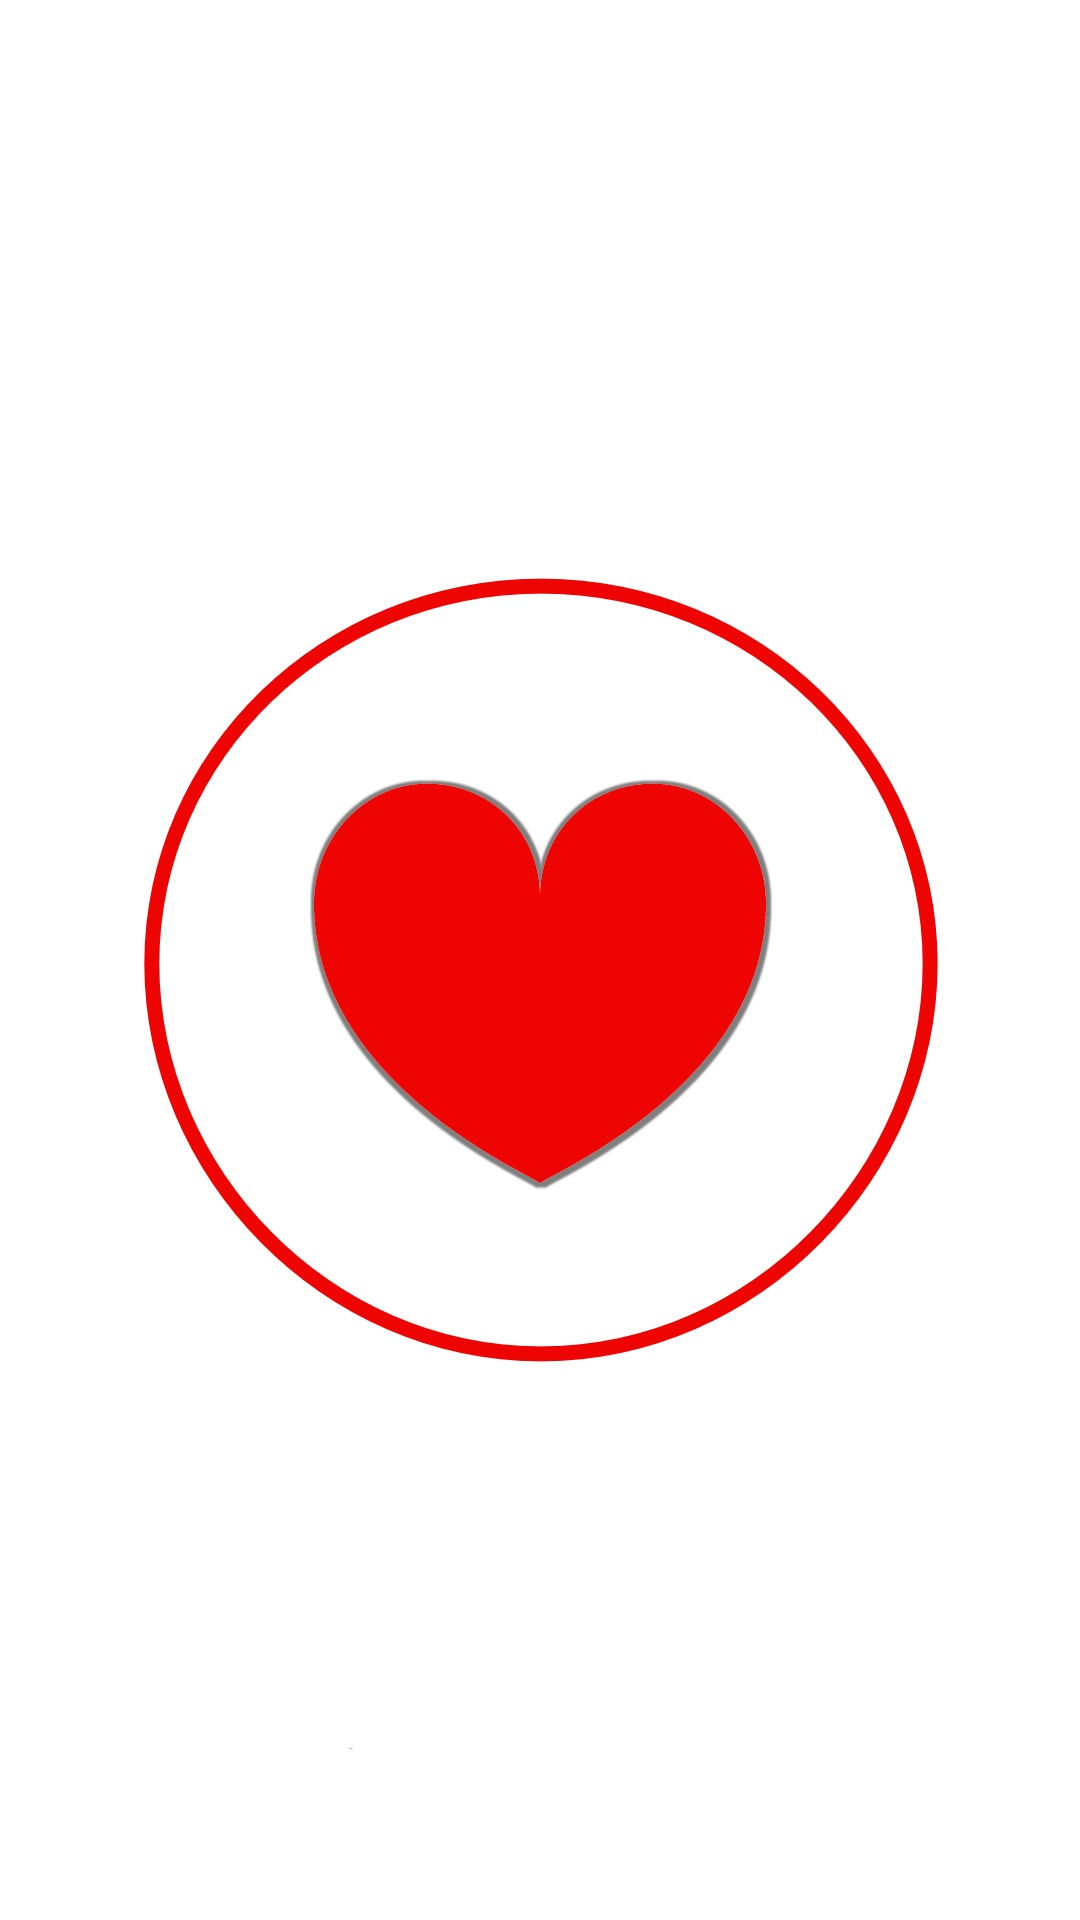 Instagram-cover-heart-red-white-lotnotes.com.jpg